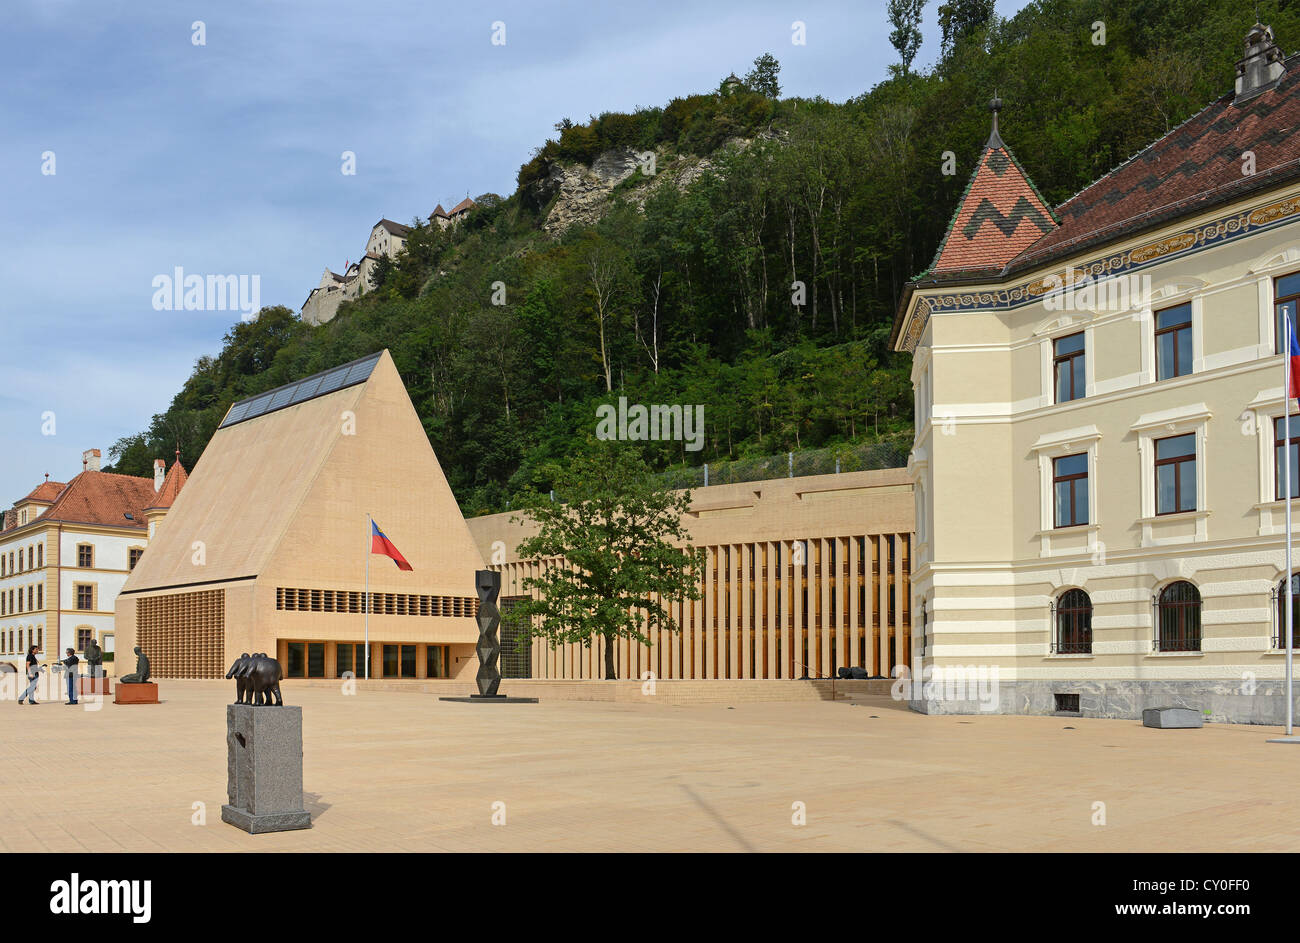 The Principality of Liechtenstein is known for his banks and shops - Stock Image